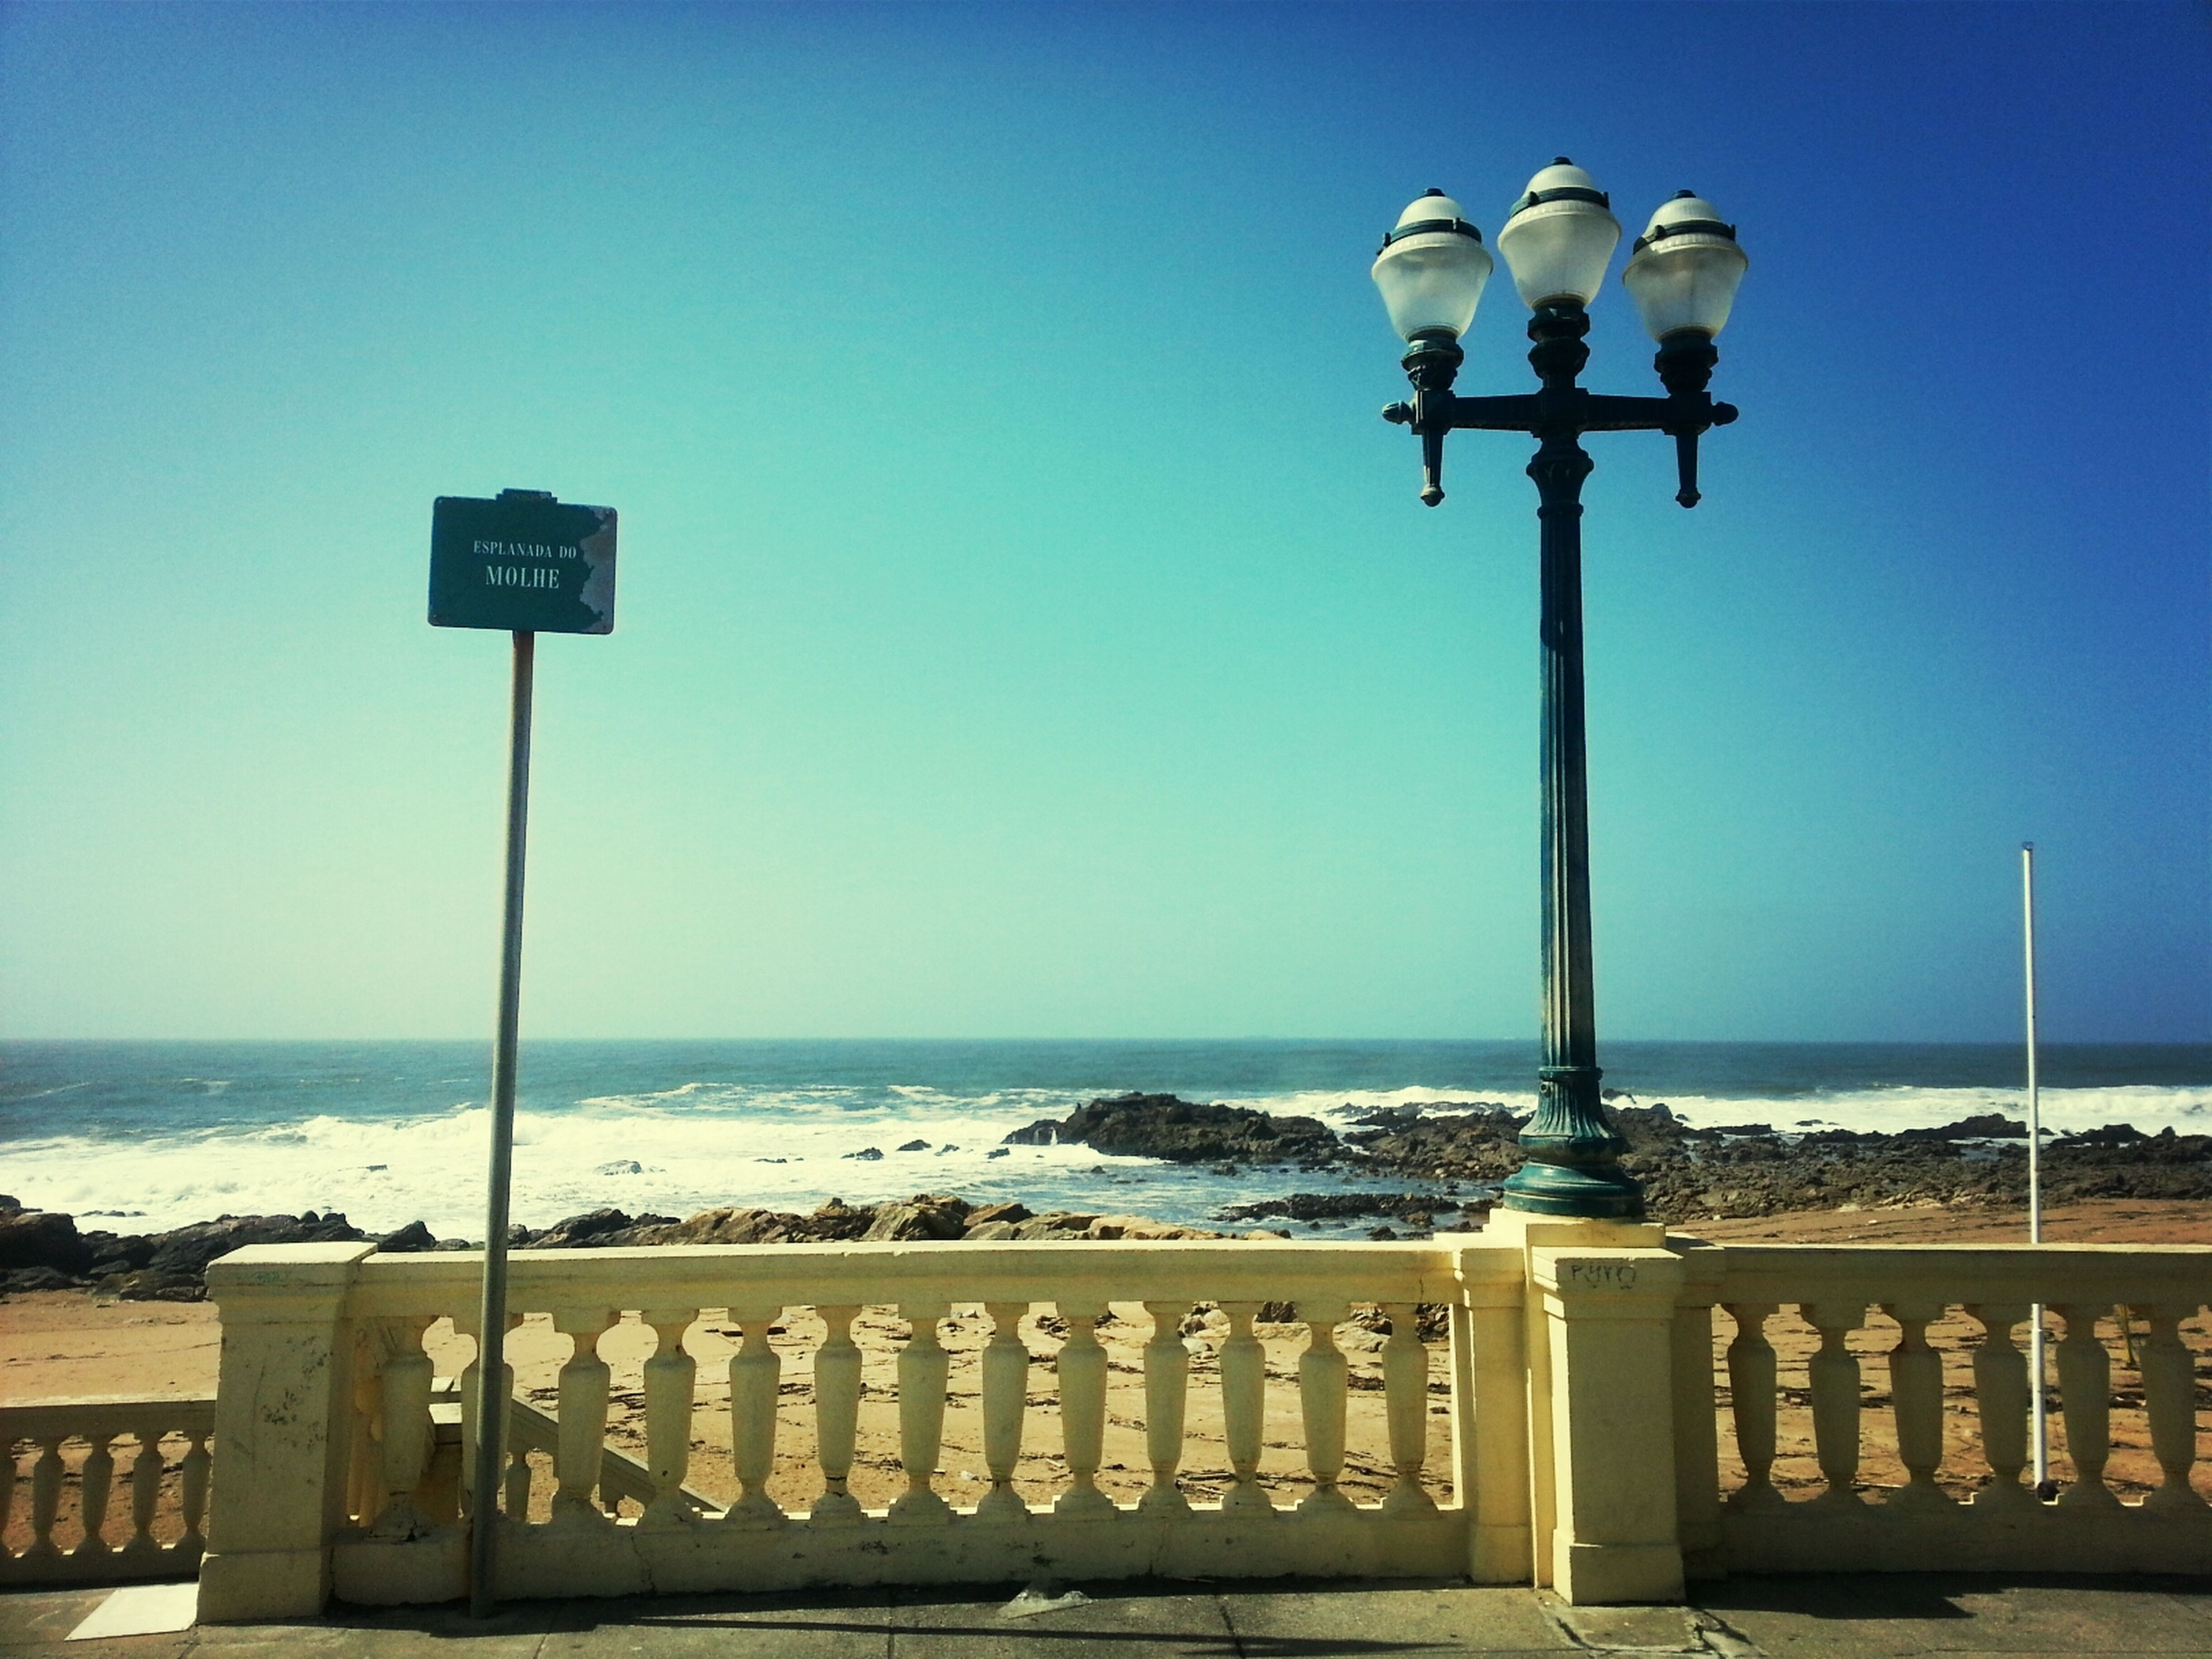 sea, clear sky, horizon over water, street light, water, lighting equipment, guidance, text, blue, copy space, pole, communication, information sign, sign, western script, tranquility, beach, lamp post, tranquil scene, nature